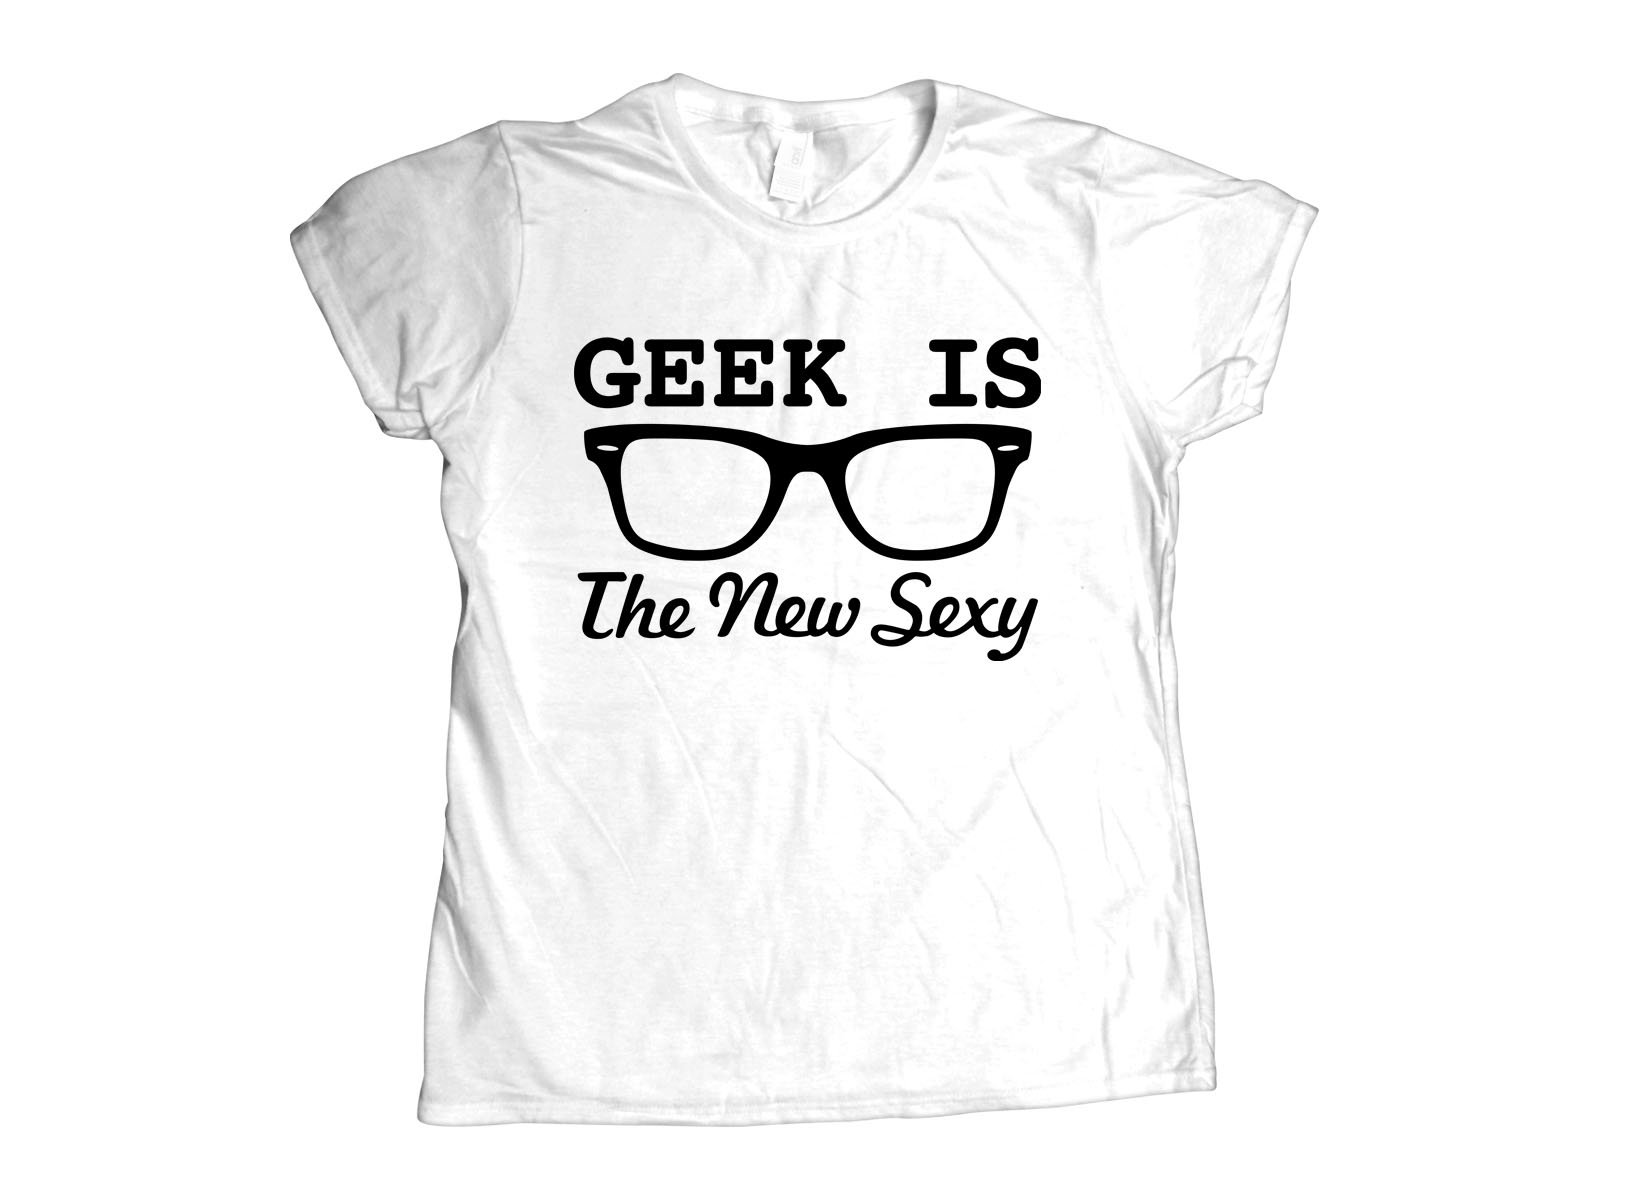 Geek Is The New Sexy on Womens T-Shirt